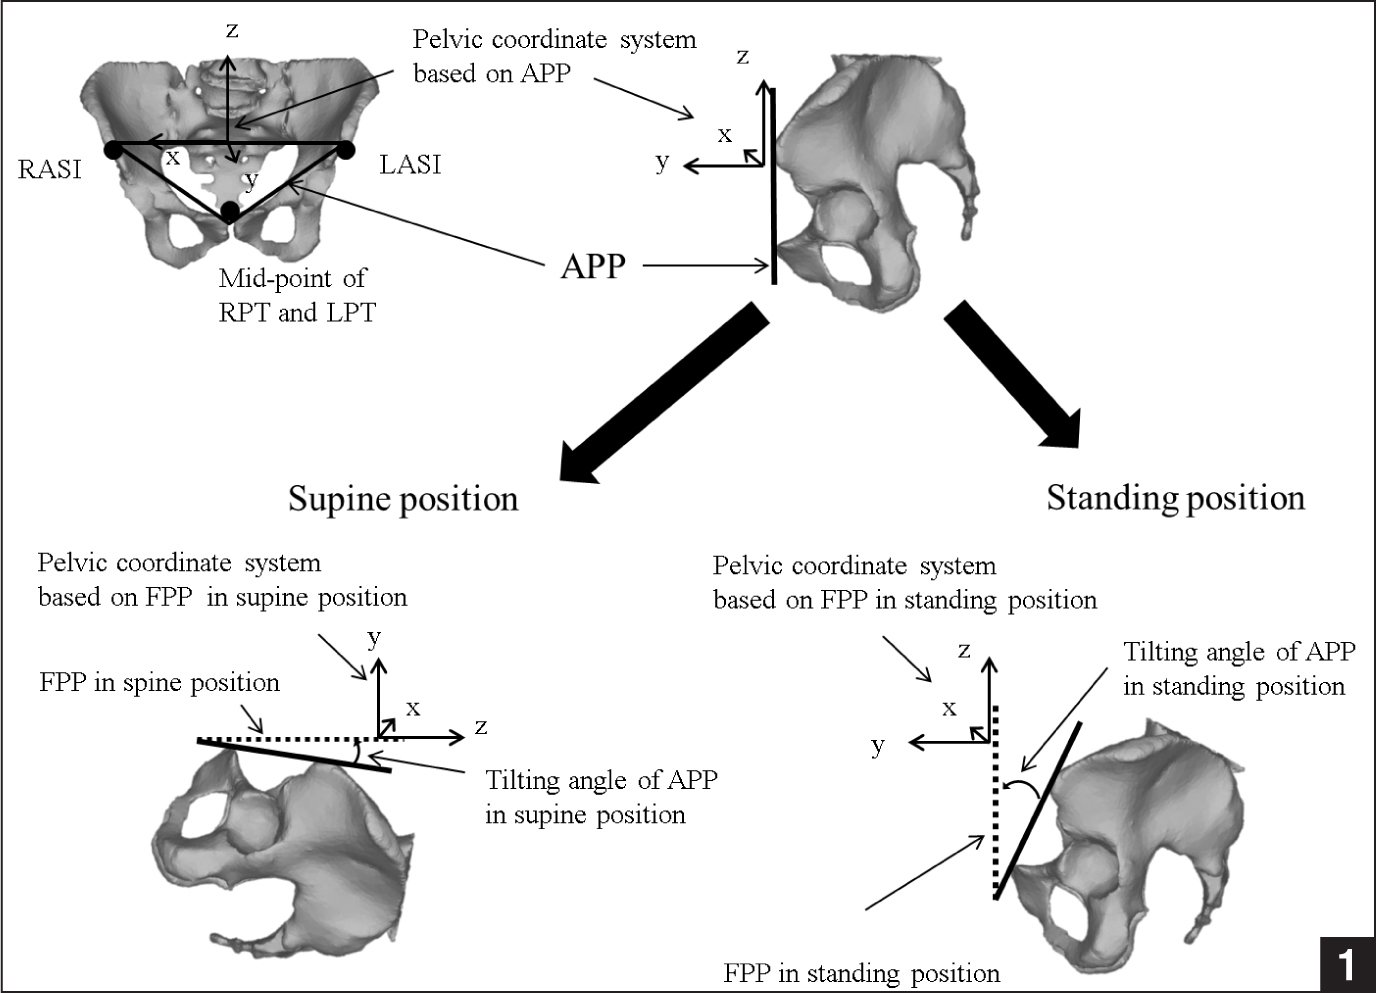 Medical abbreviations tha - The Anterior Pelvic Plane App And Functional Pelvic Plane Fpp Defined In